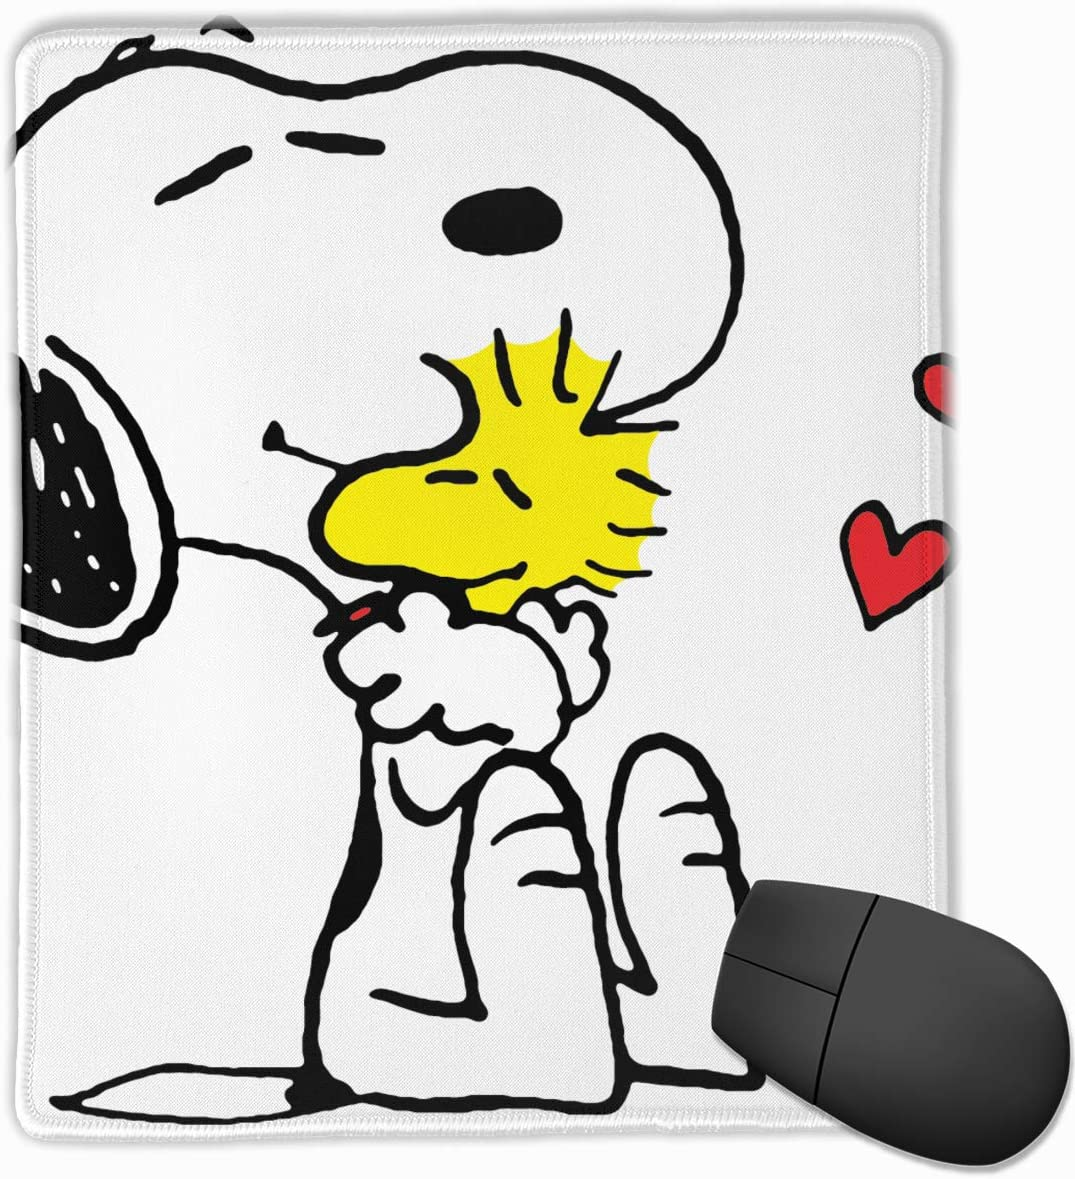 7.1x8.7IN,18x22CM Mouse Pad Snoopy Love Computer Mouse Mat